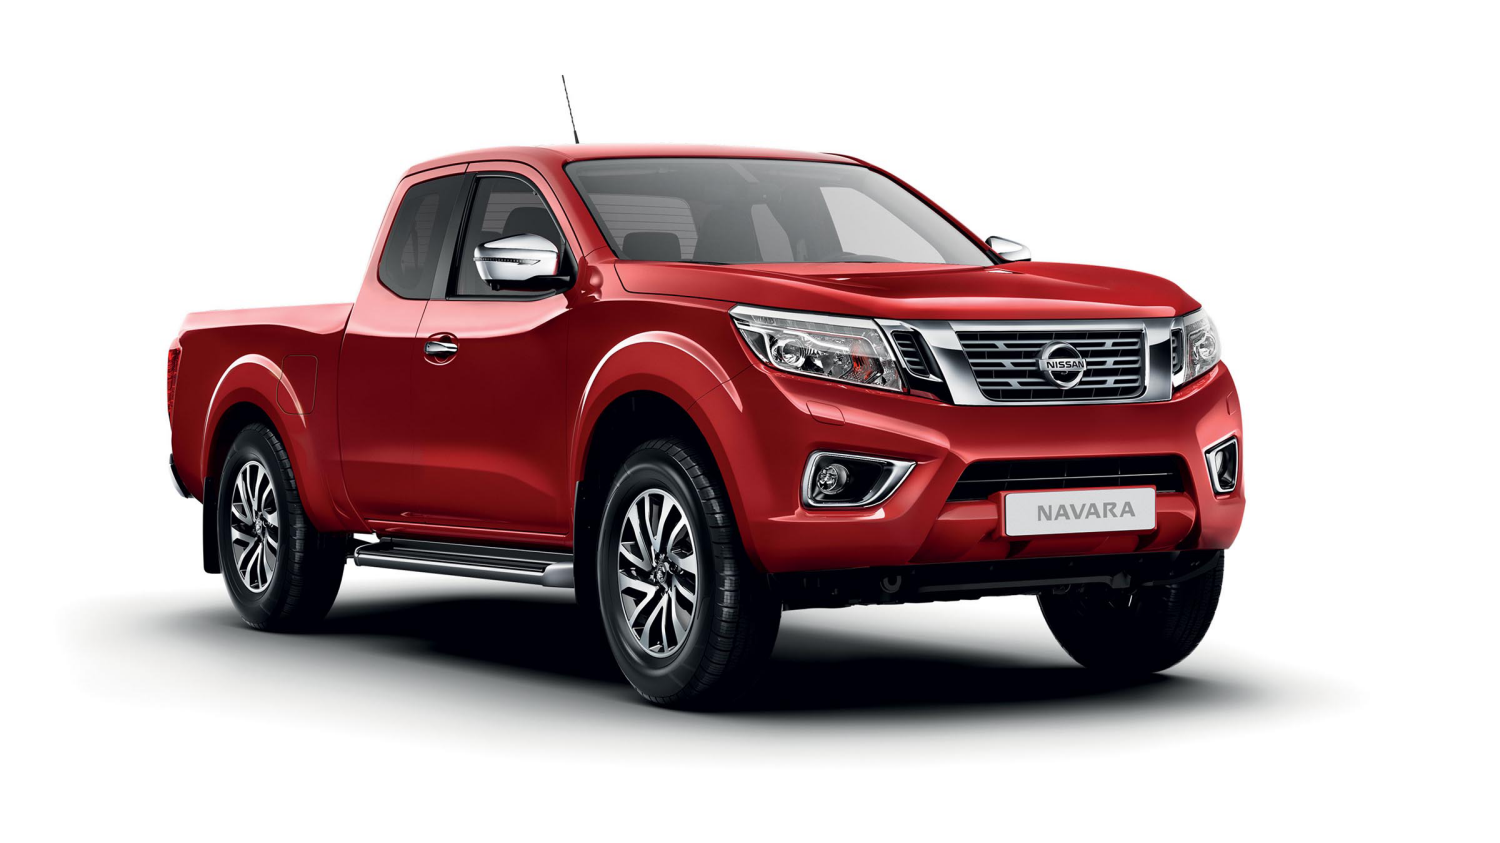 Nissan NP300 NAVARA N-Connecta - 3/4 front view